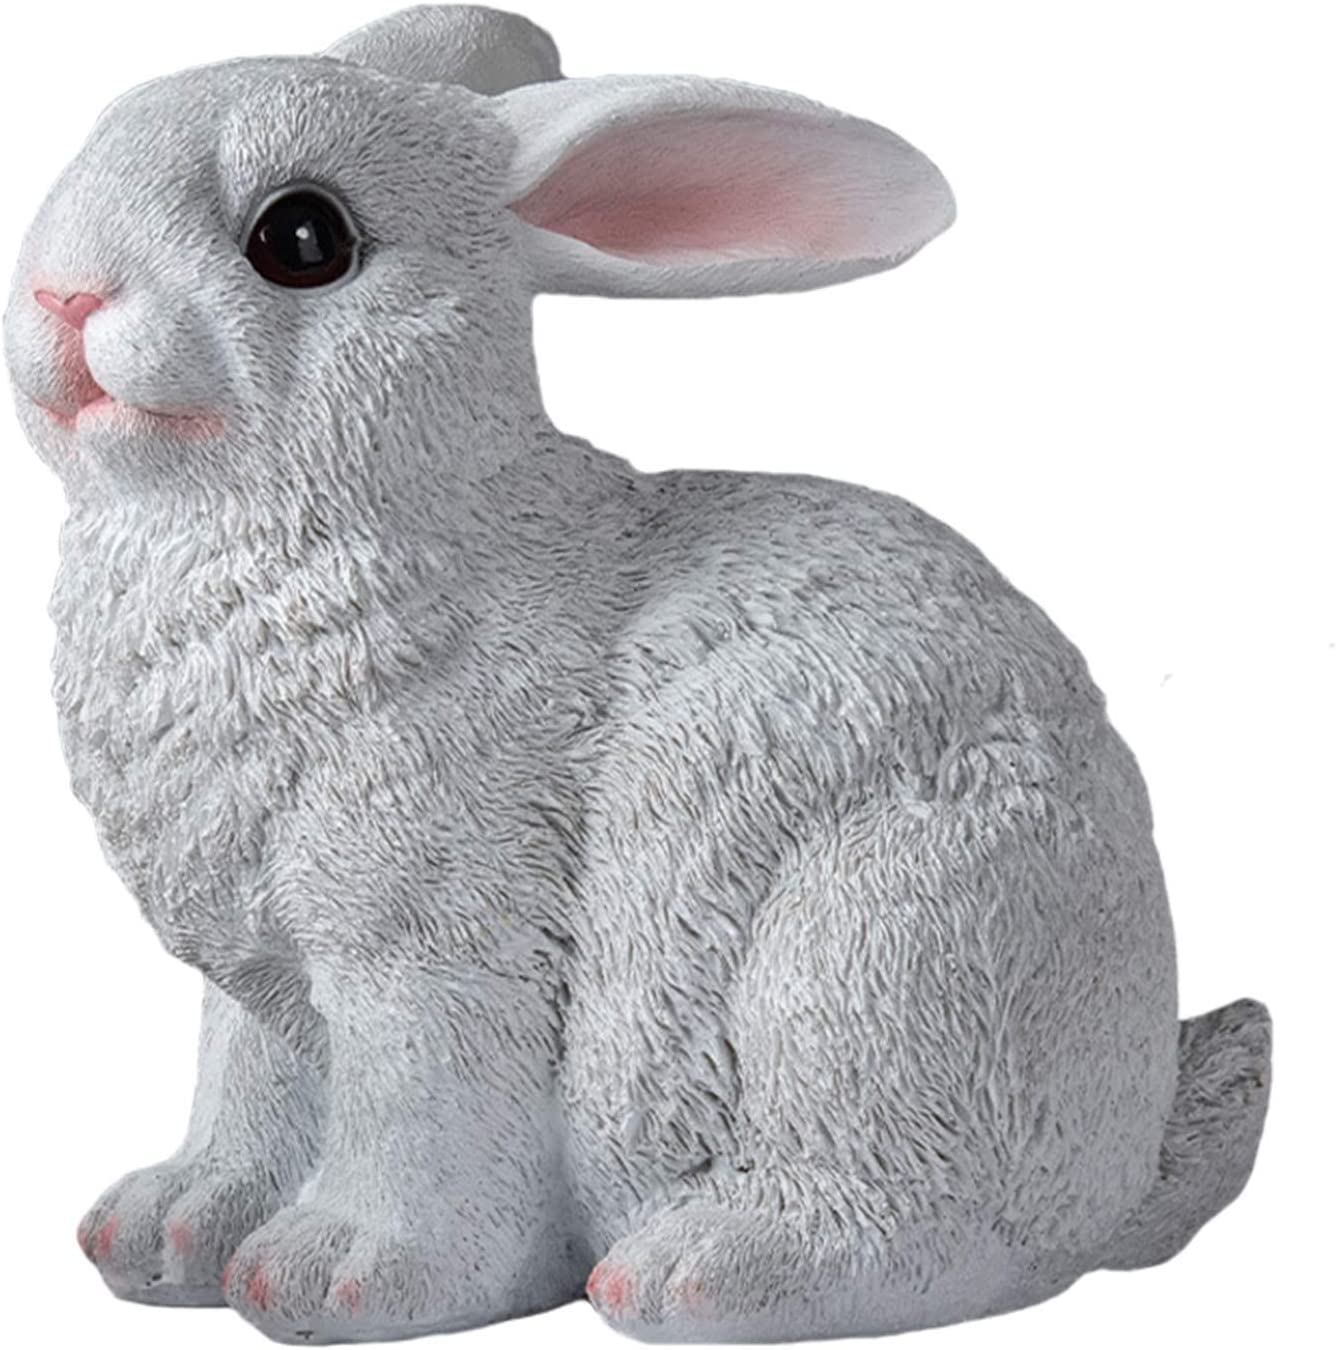 LTLWL Resin Ornaments Simulation Rabbit Ornaments Creativity Home Decorations Garden Resin Ornament Statue Crafts Gifts for Friends,White Squatting Position